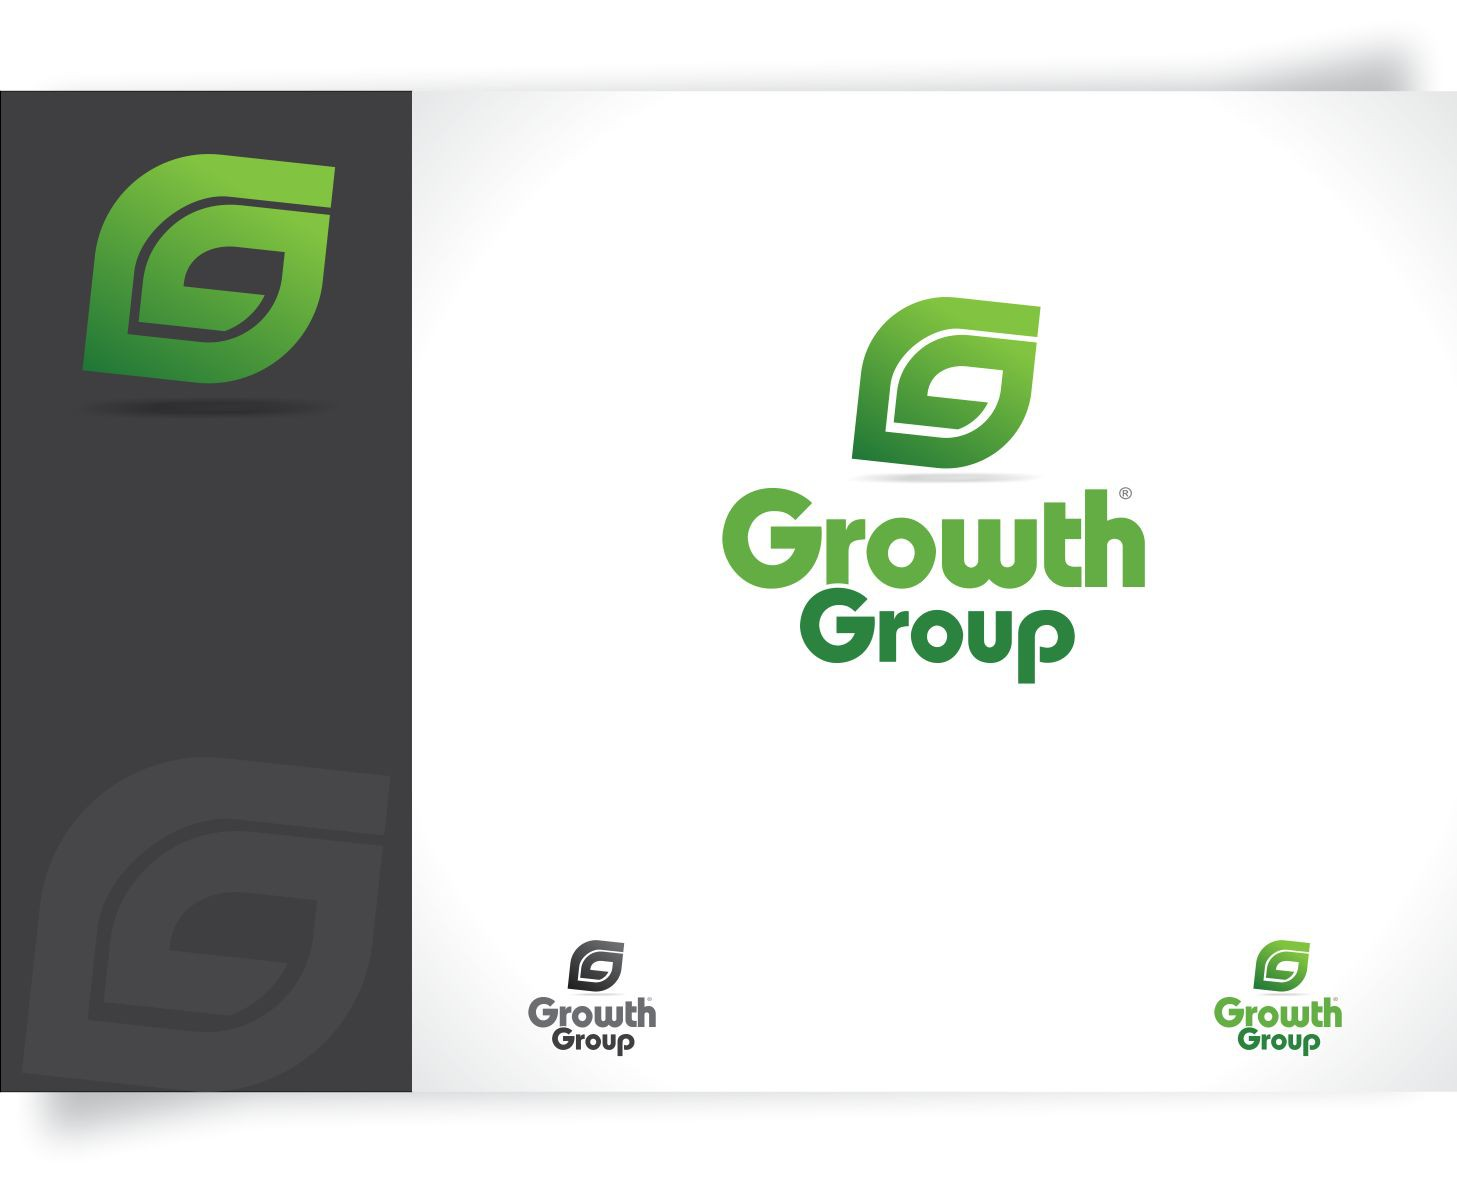 logo for Growth Group or just two g's